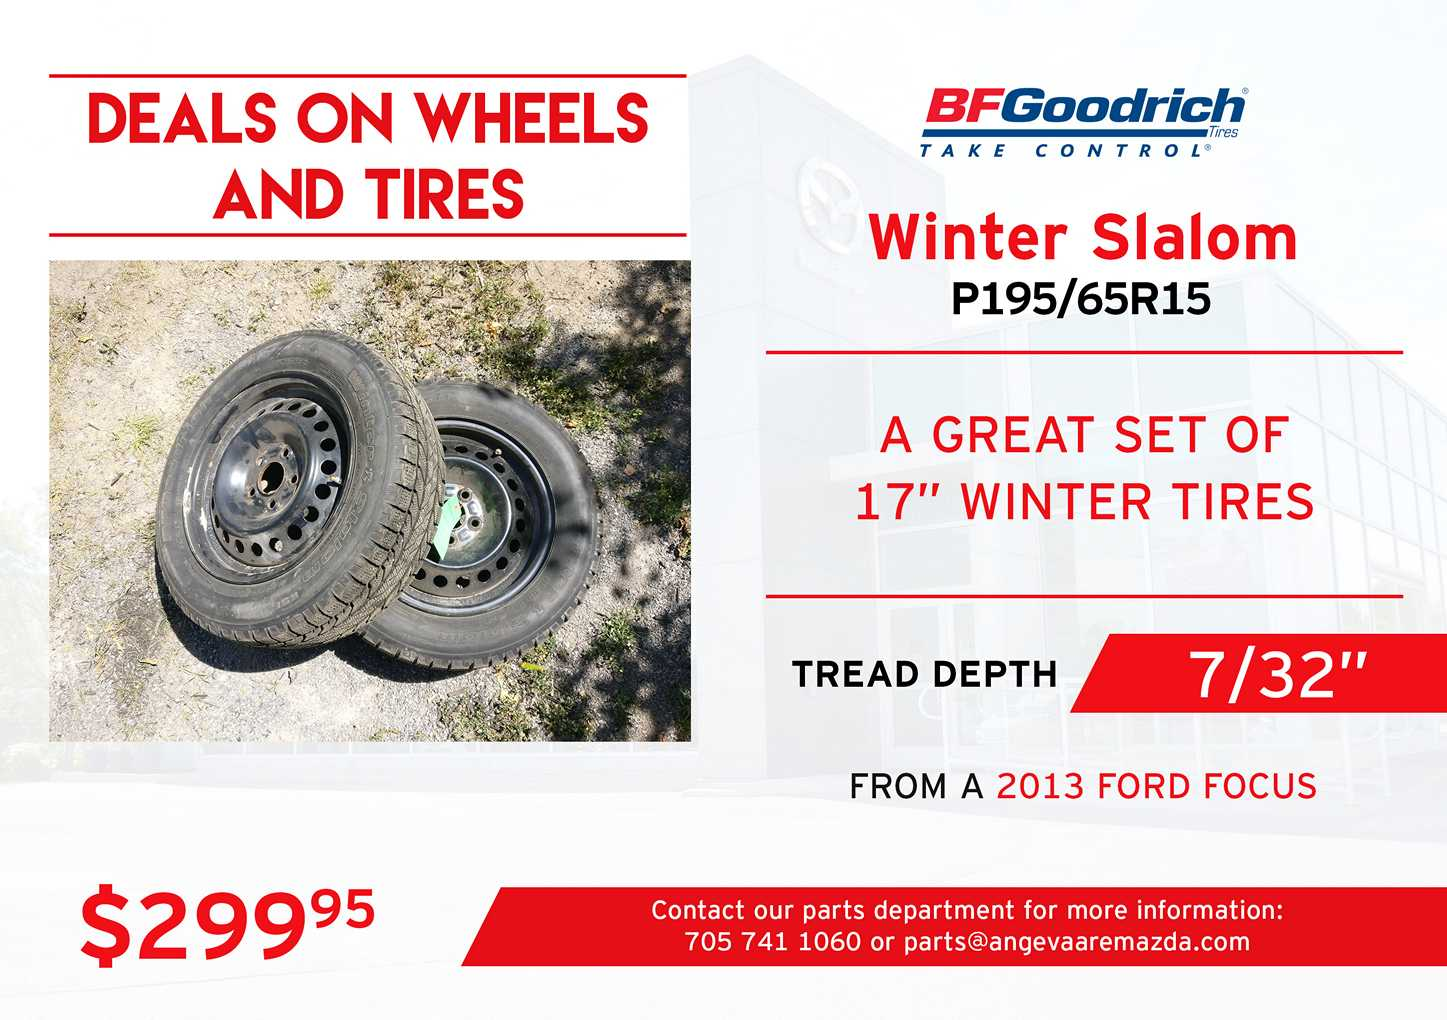 BF Goodrich Winter Slalom tires P195/65R15 with a tread depth of 7/32